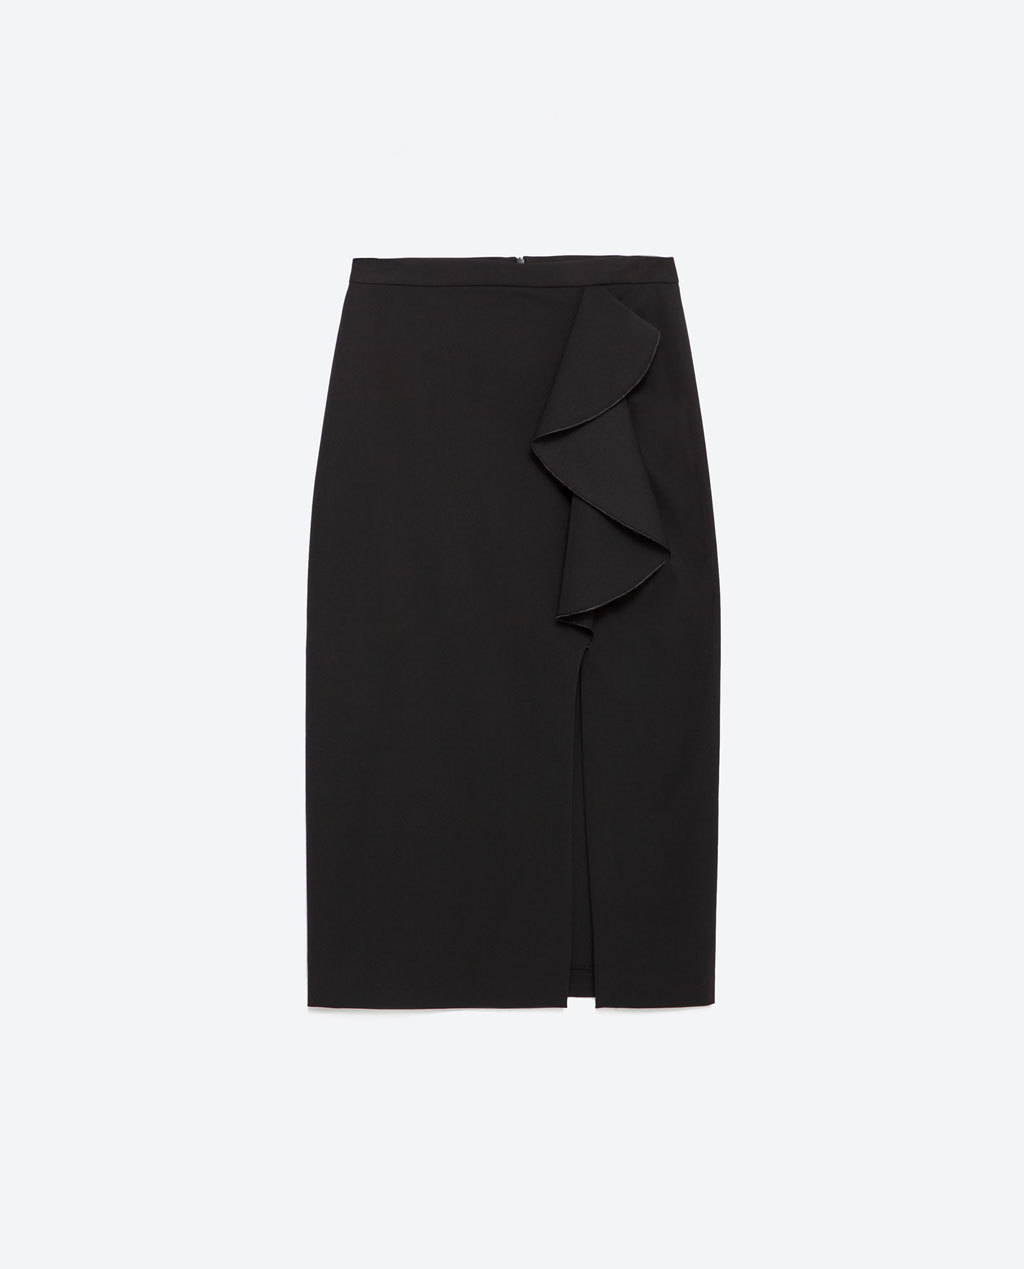 Pencil Skirt With Ruffle - pattern: plain; style: pencil; fit: tailored/fitted; waist: high rise; predominant colour: black; occasions: evening, work; length: on the knee; hip detail: adds bulk at the hips; pattern type: fabric; texture group: woven light midweight; season: a/w 2015; wardrobe: basic